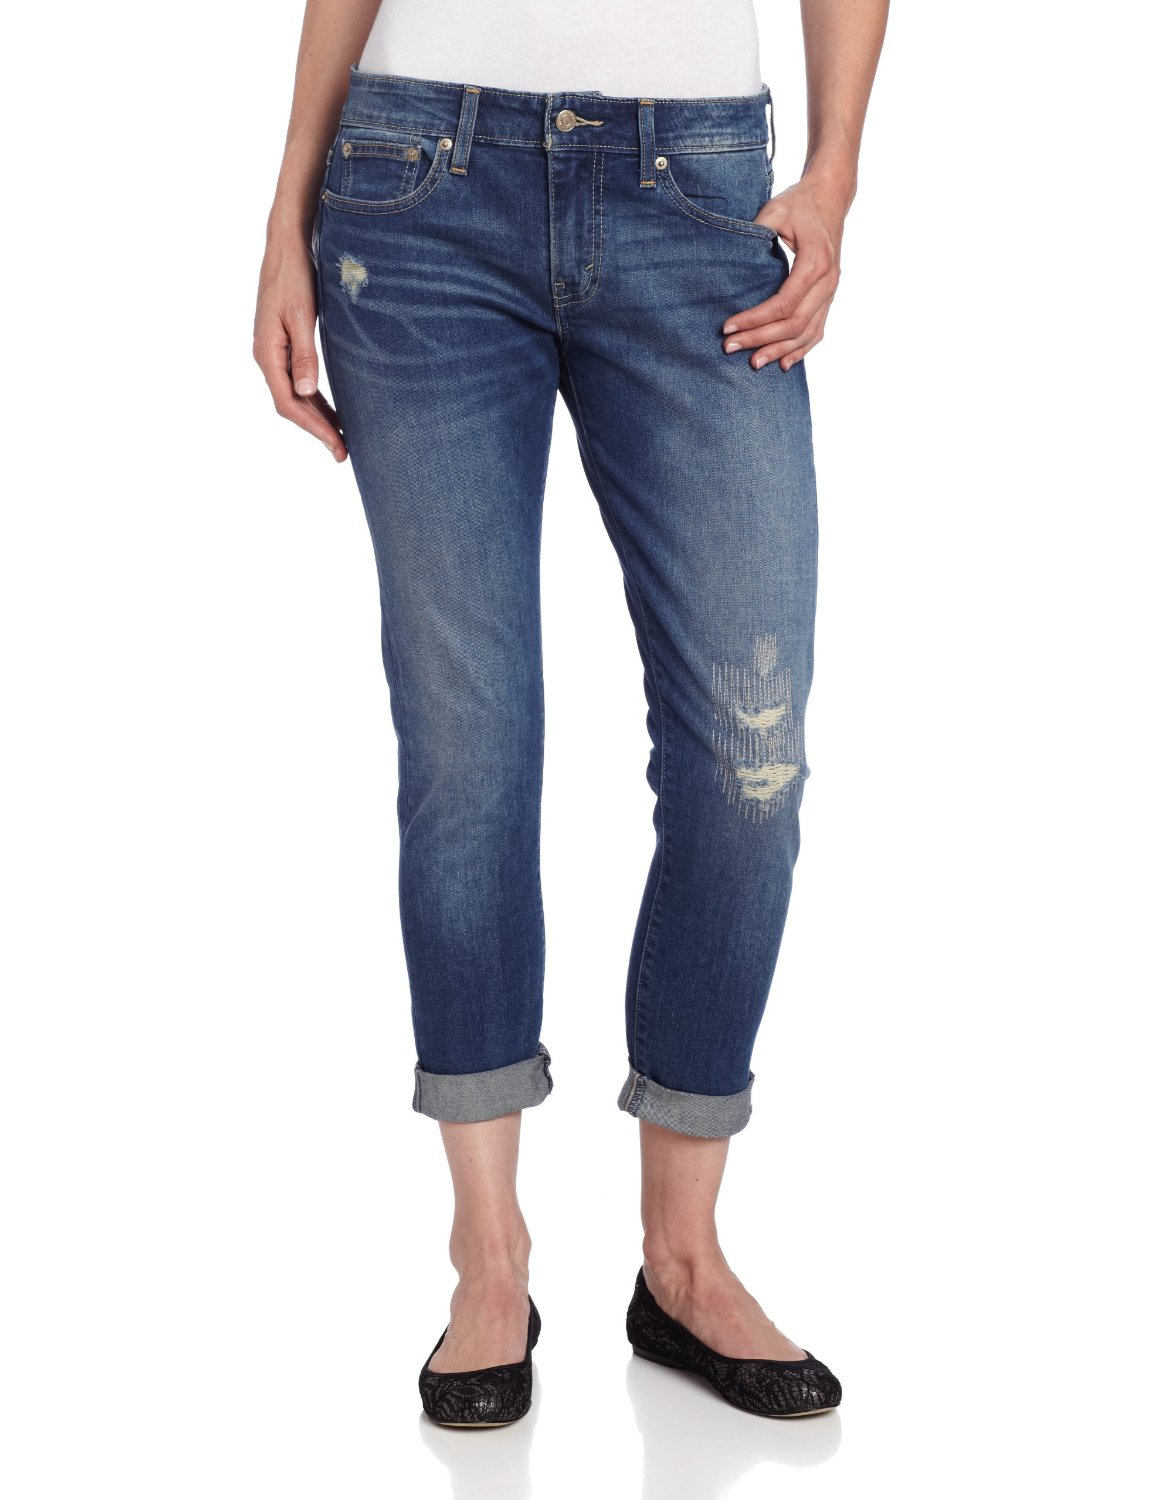 Great Looking | legging jean for Women | beautifully and feels ...